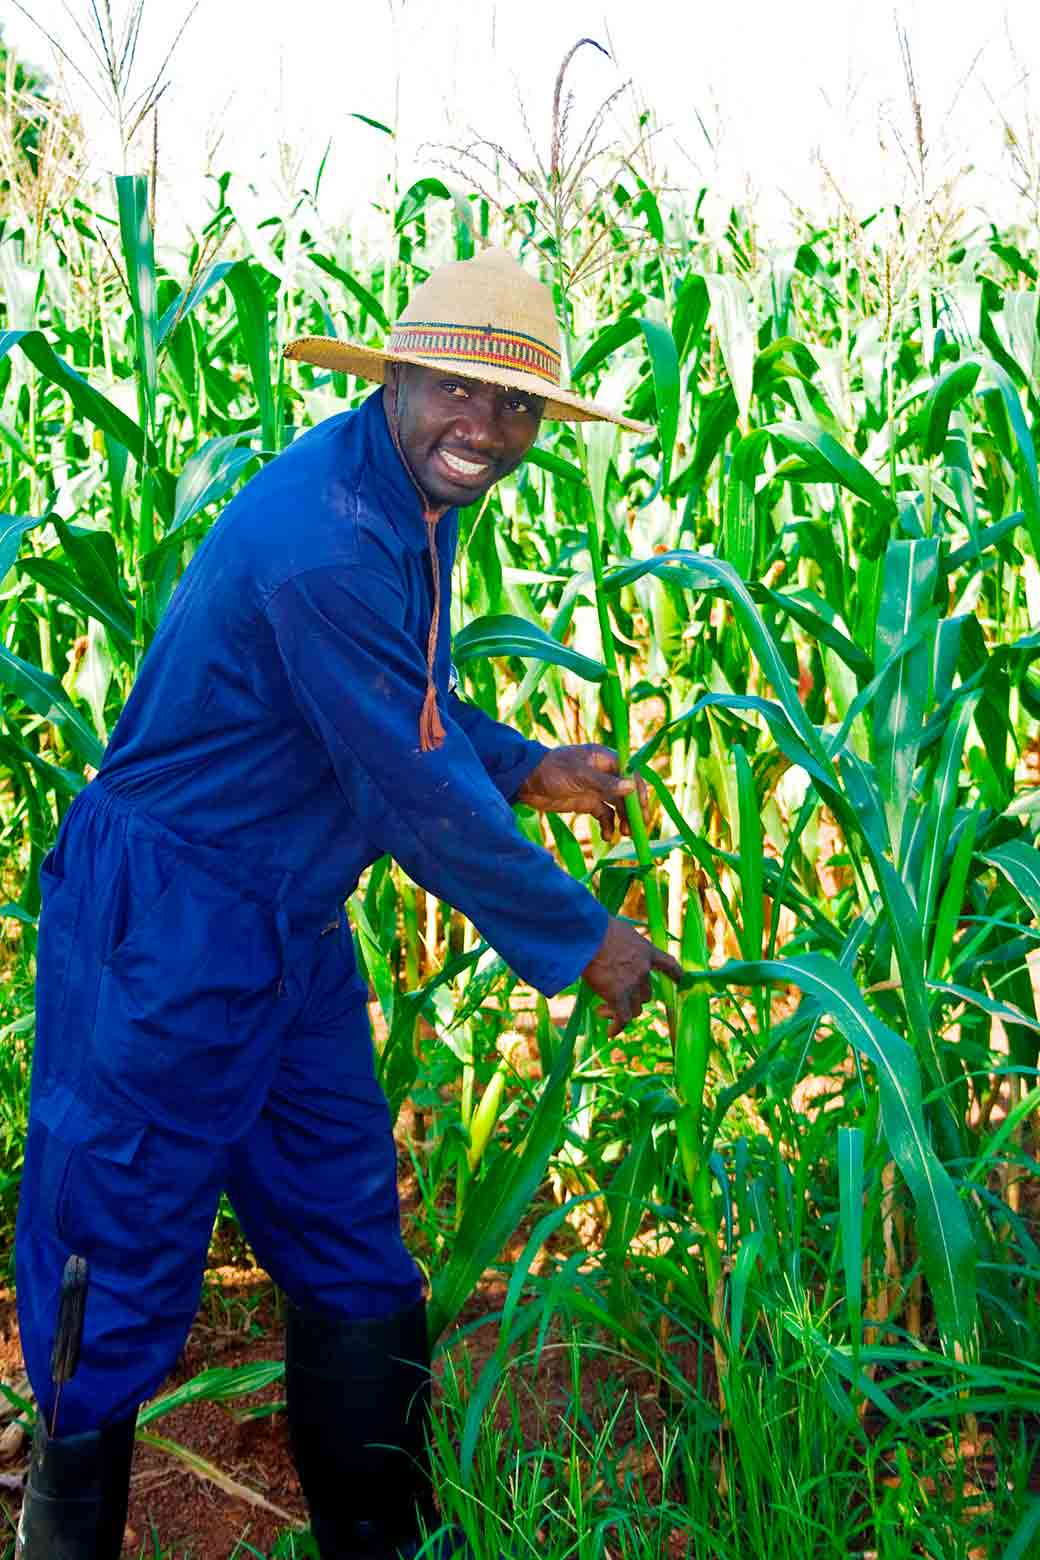 Samuel Mahamadu shows off maize he grew on his farm in Ghana.